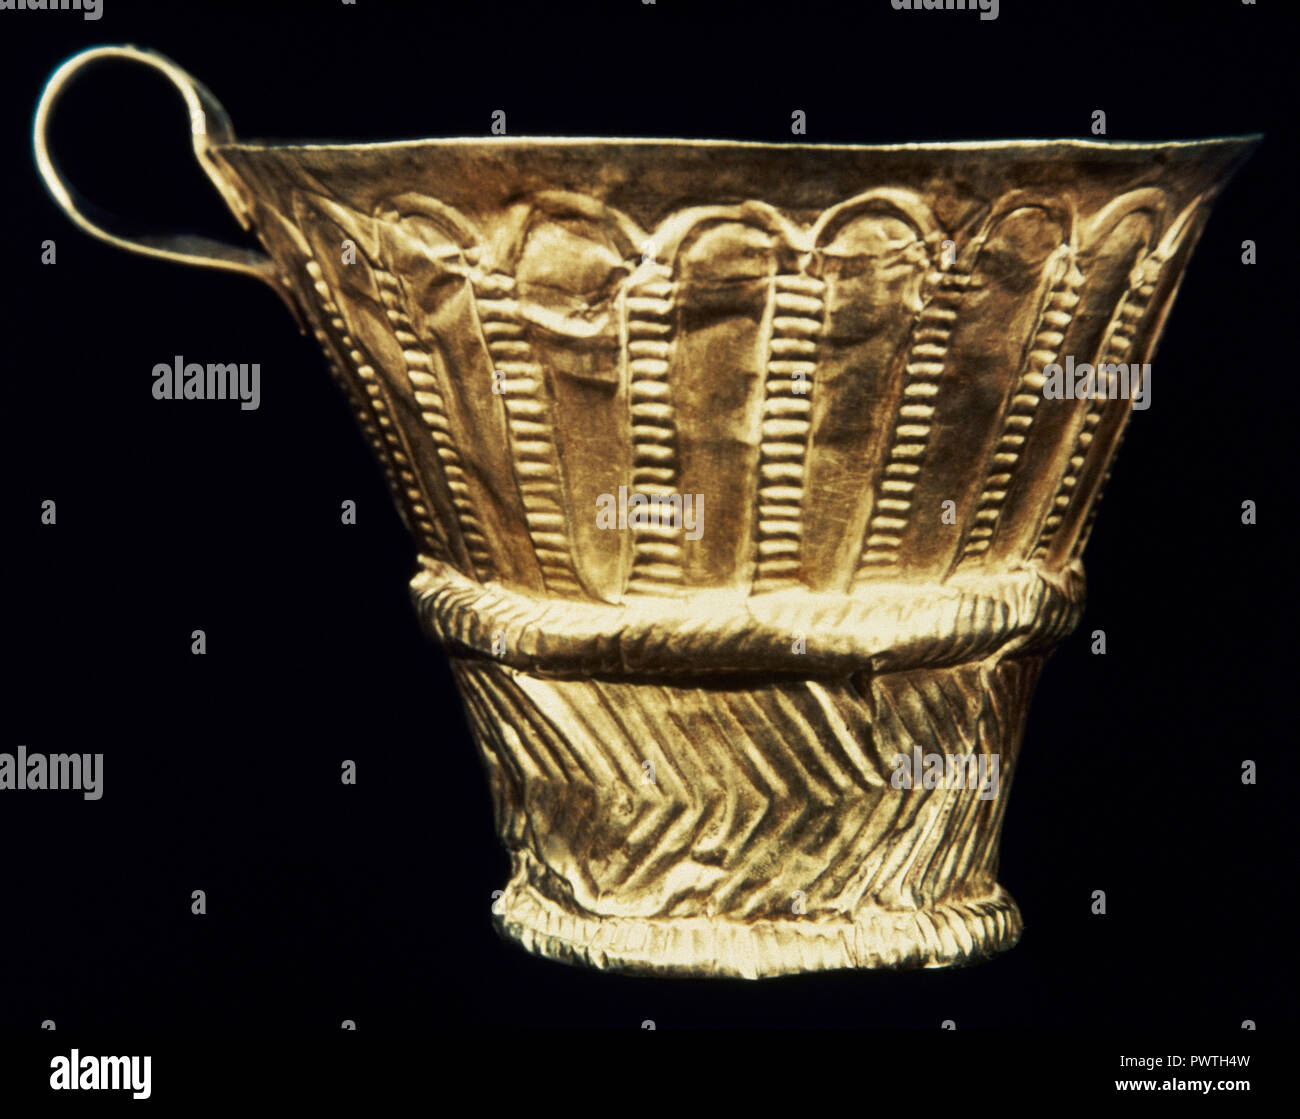 Gold cup. Embossing decoration with geometric motifs. Royal Tombs of Mycenae. 16th century BC. Tomb V. Grave Circle A. National Archaeological Museum. Athens, Greece. - Stock Image